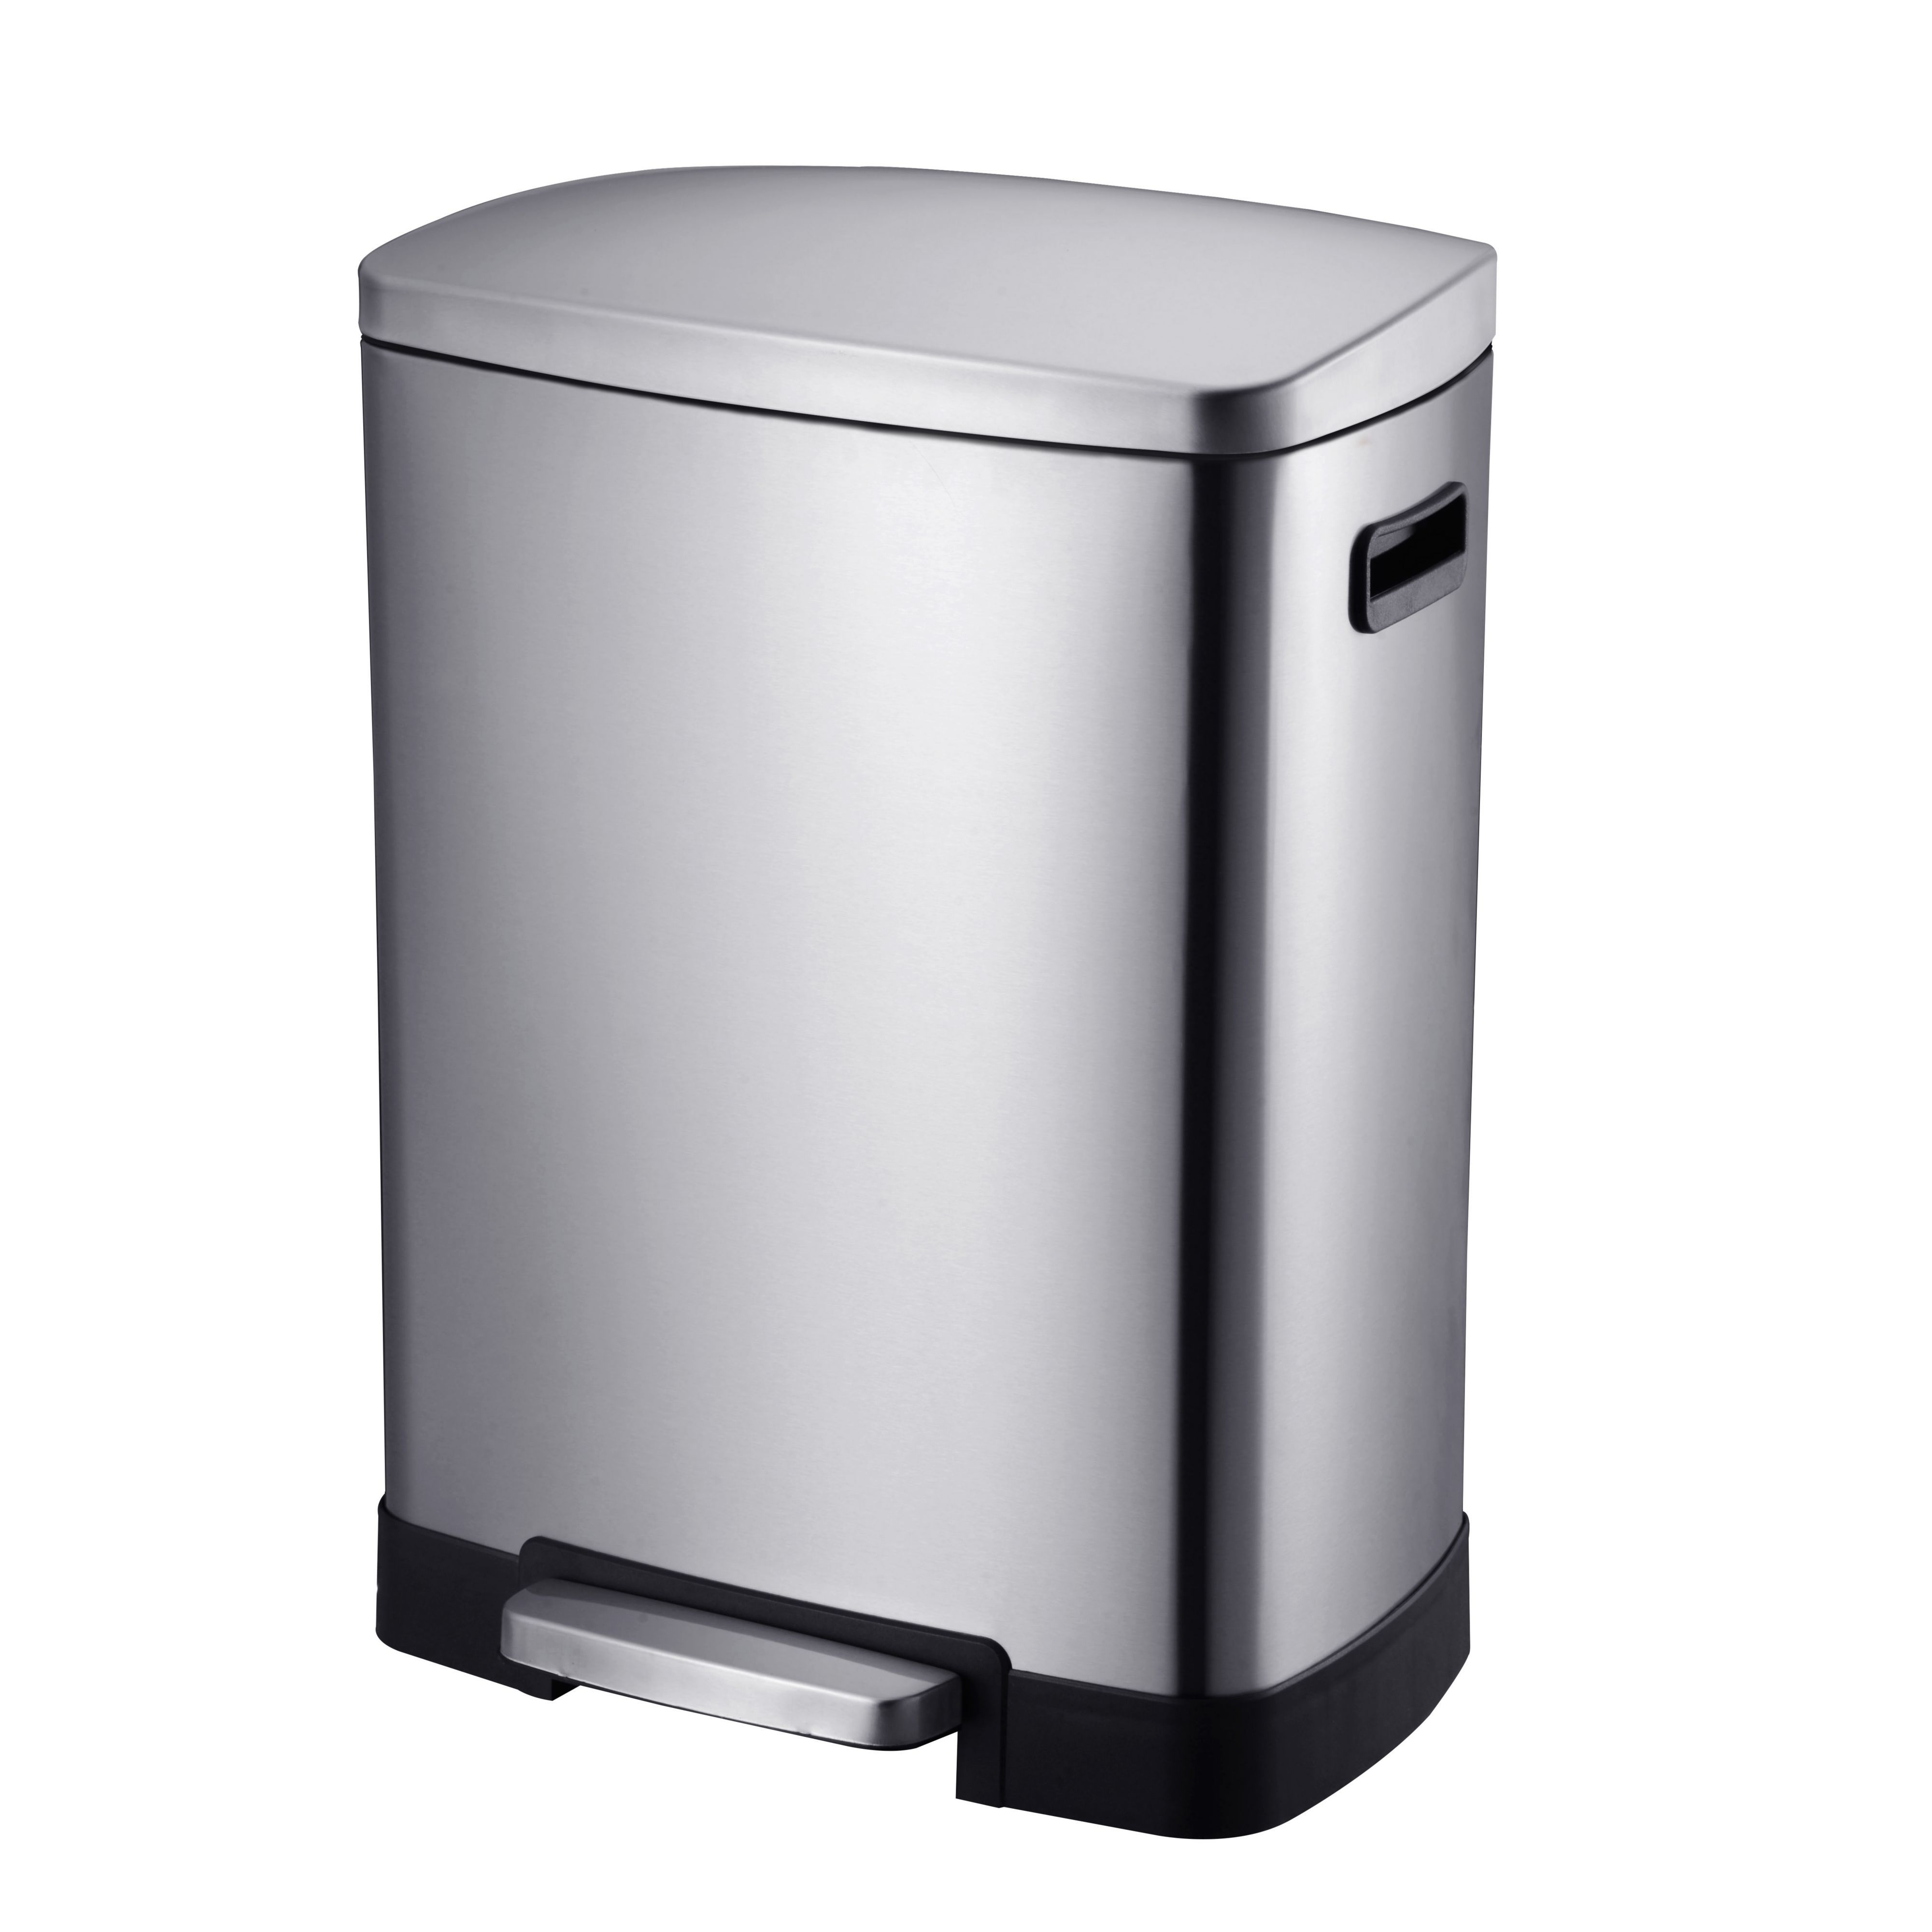 Cooke & Lewis Stainless Steel Rectangular Recycle Pedal Bin